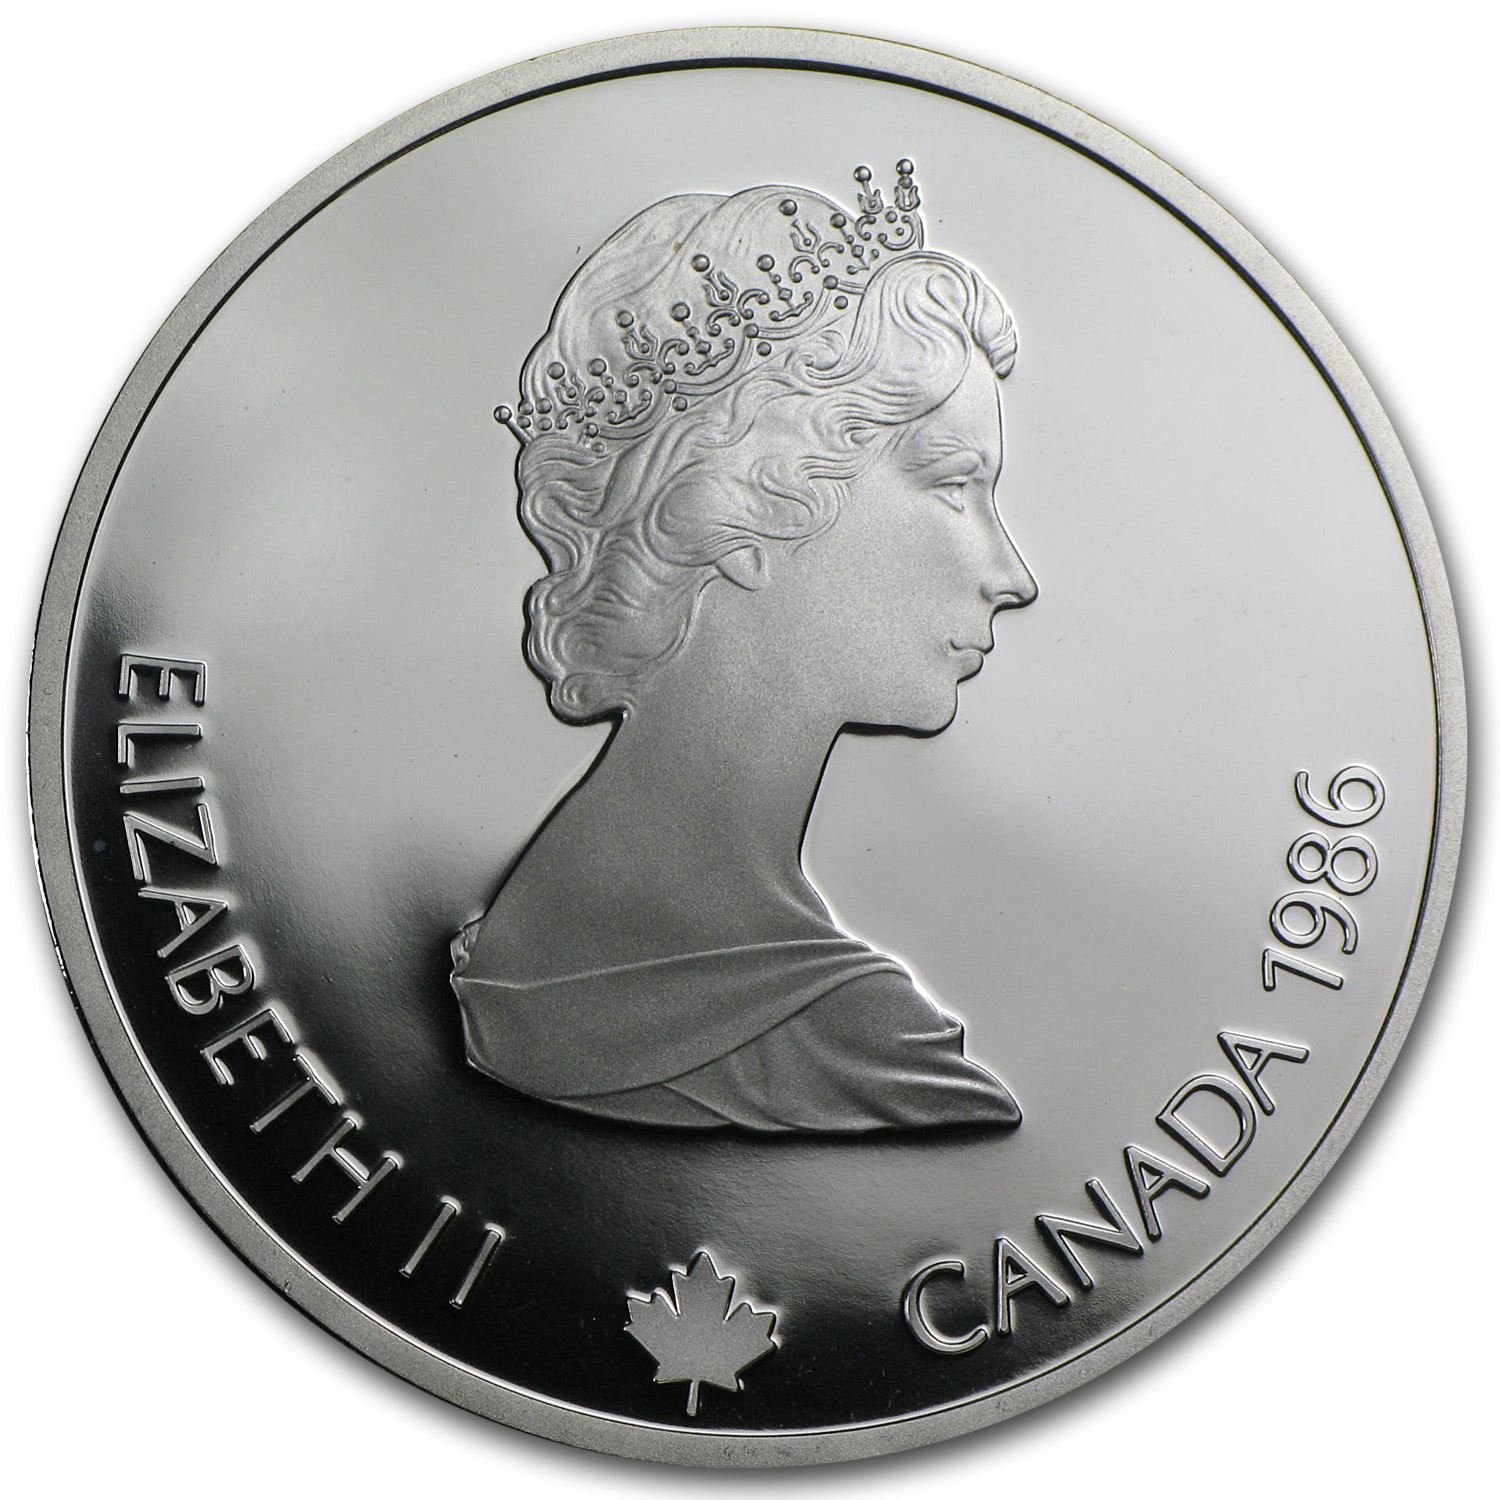 1988 $20 Silver Commem Canadian Olympics Proof Coins